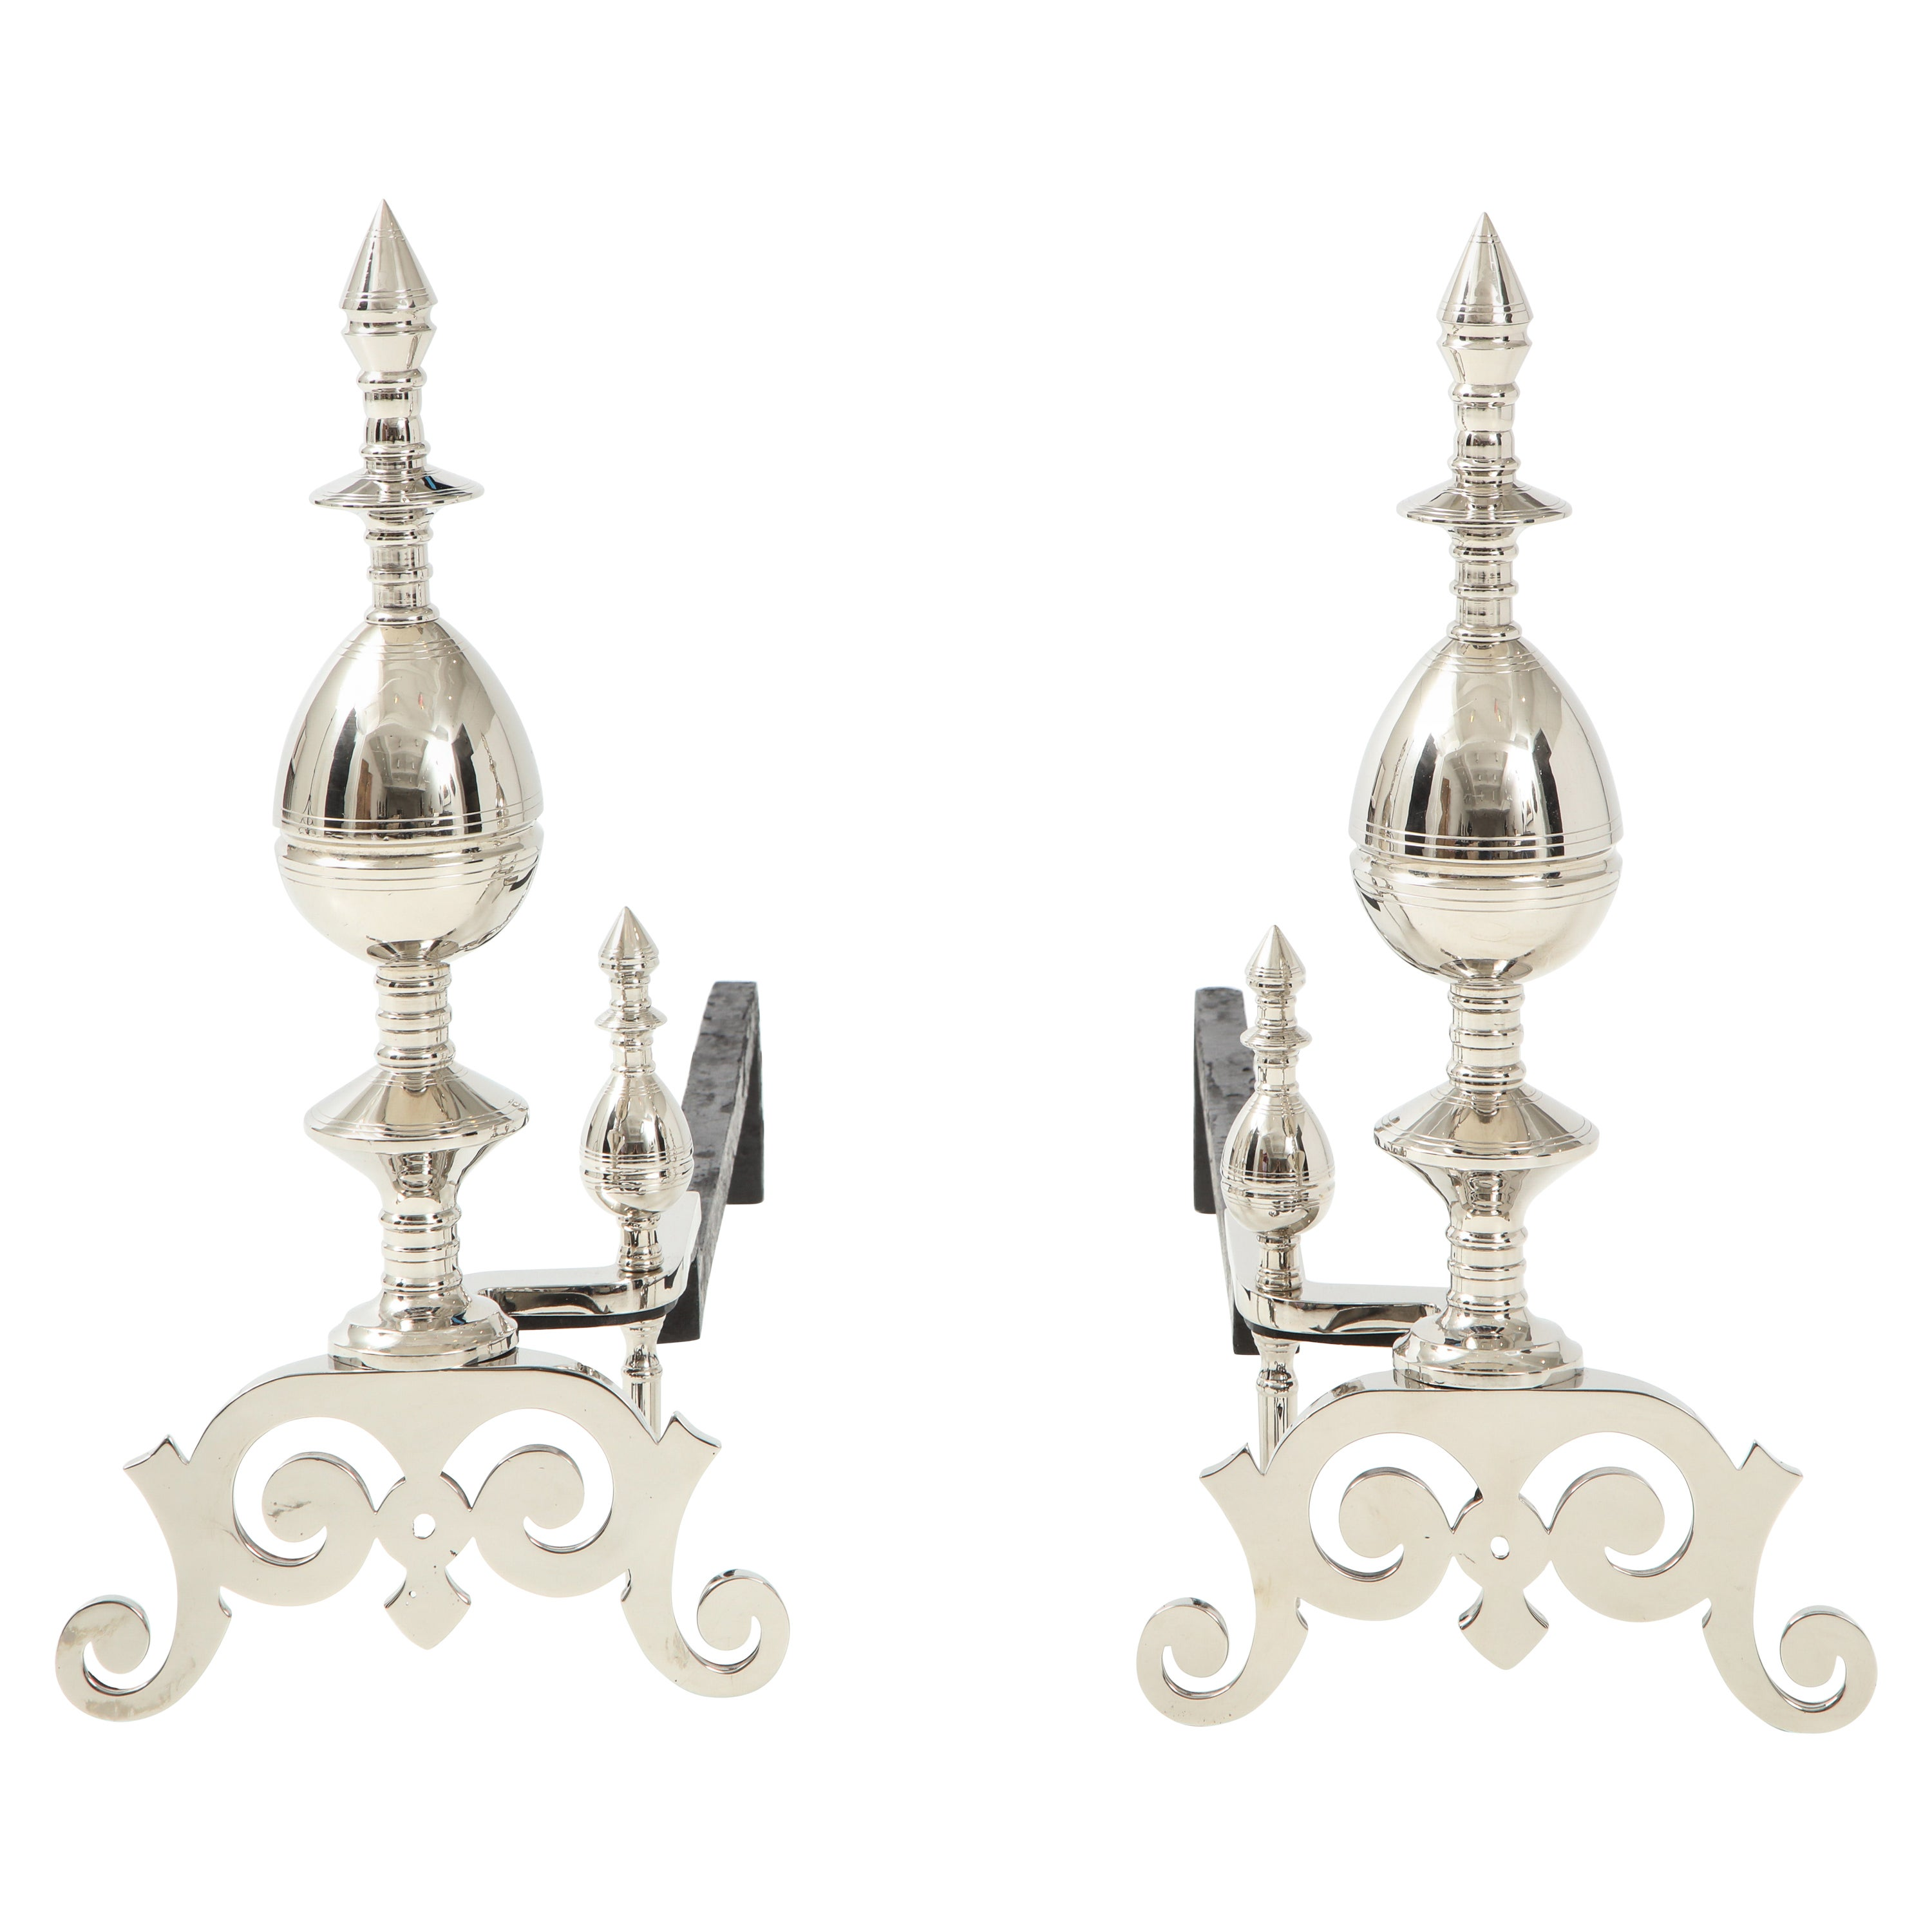 Art Deco Polished Nickel Spire Topped Andirons